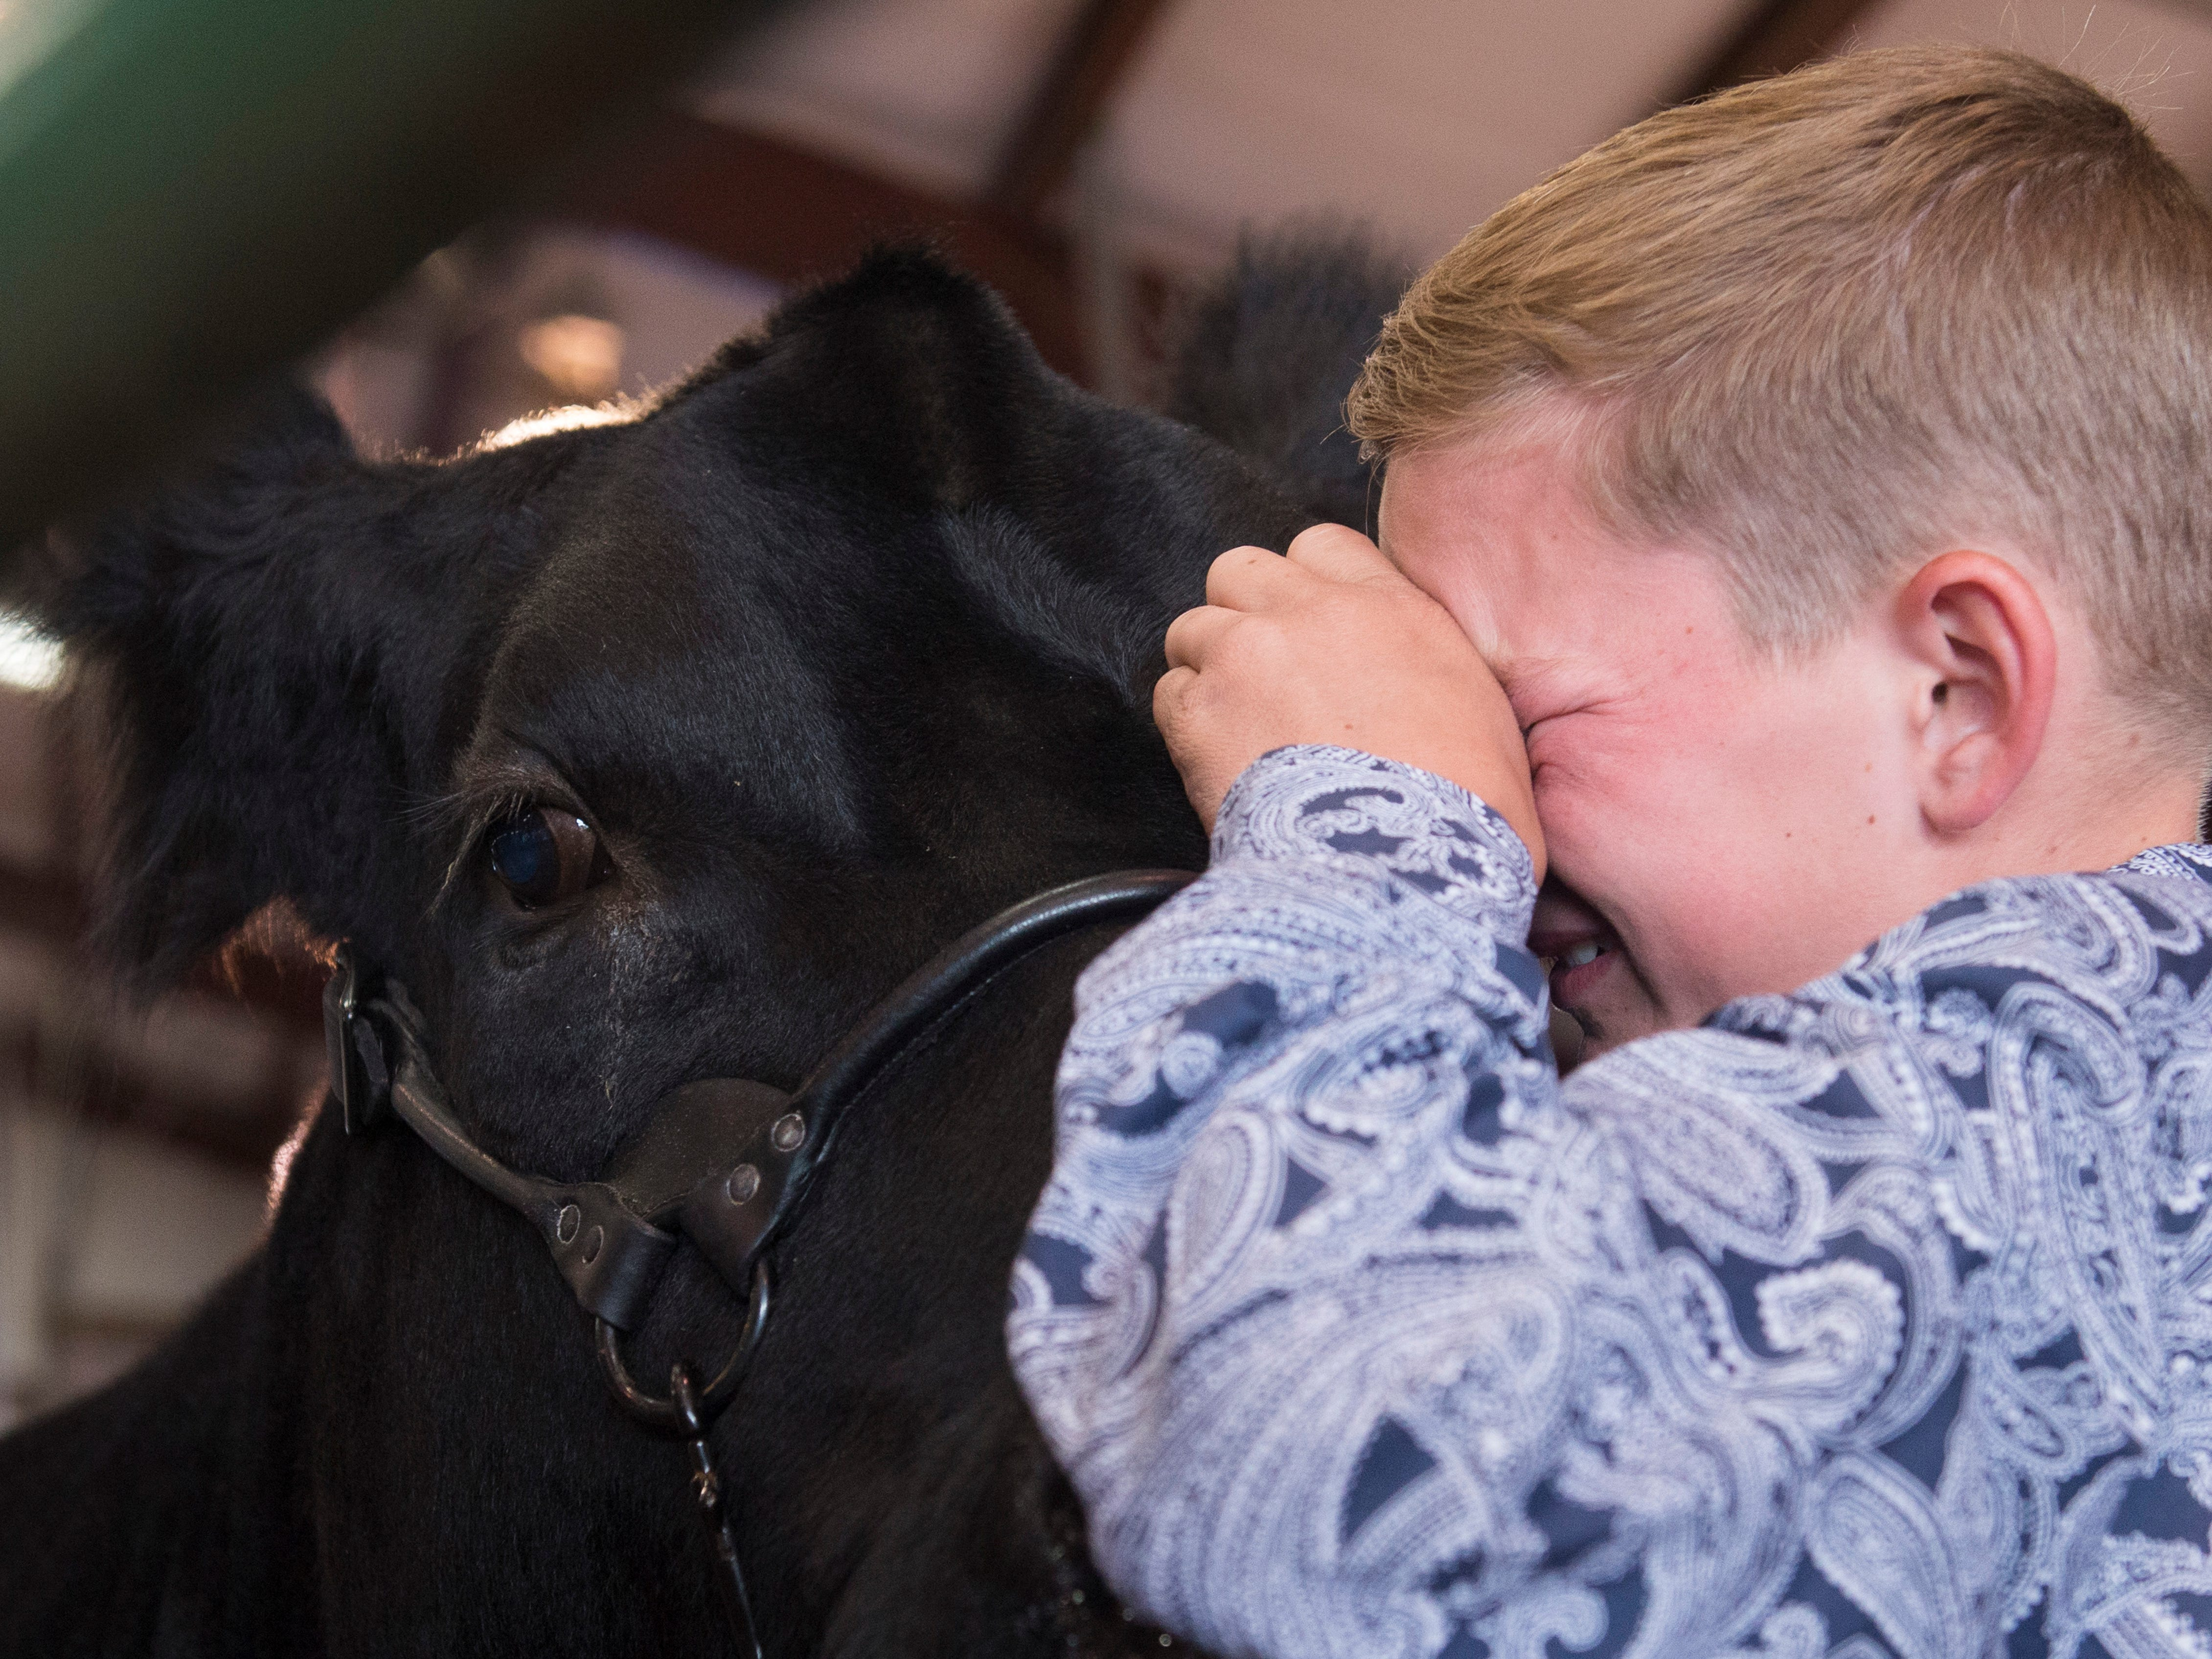 Hudson Drake says goodbye to his Grand Champion Market Steer during the Jr. Fair Market Steer, Poultry and Rabbit Sale at the Ross County Fair on August 11, 2018, in Chillicothe, Ohio.